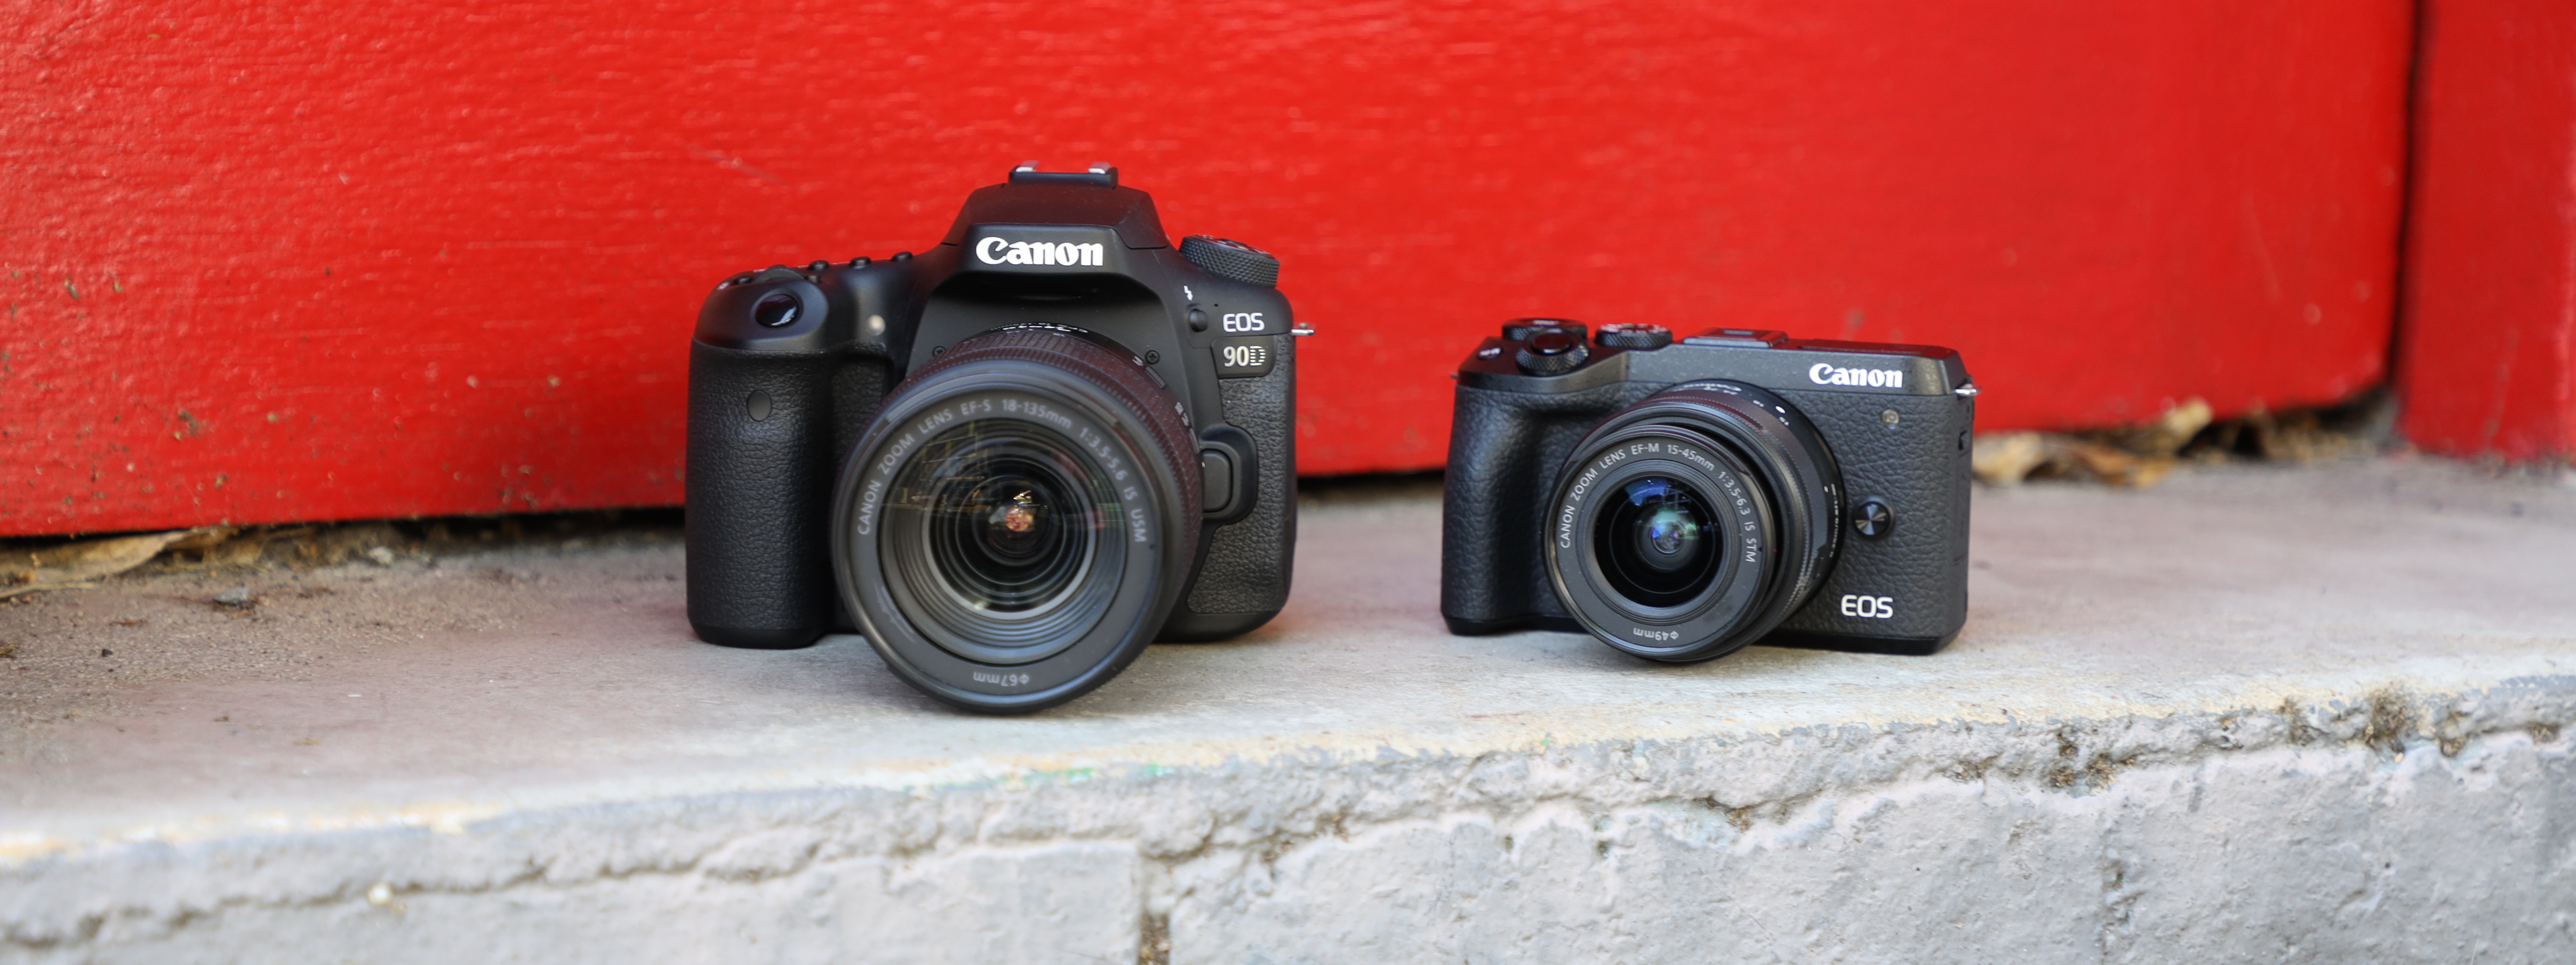 Canon 90D DLSR side-by-side with Canon M6 Mark II